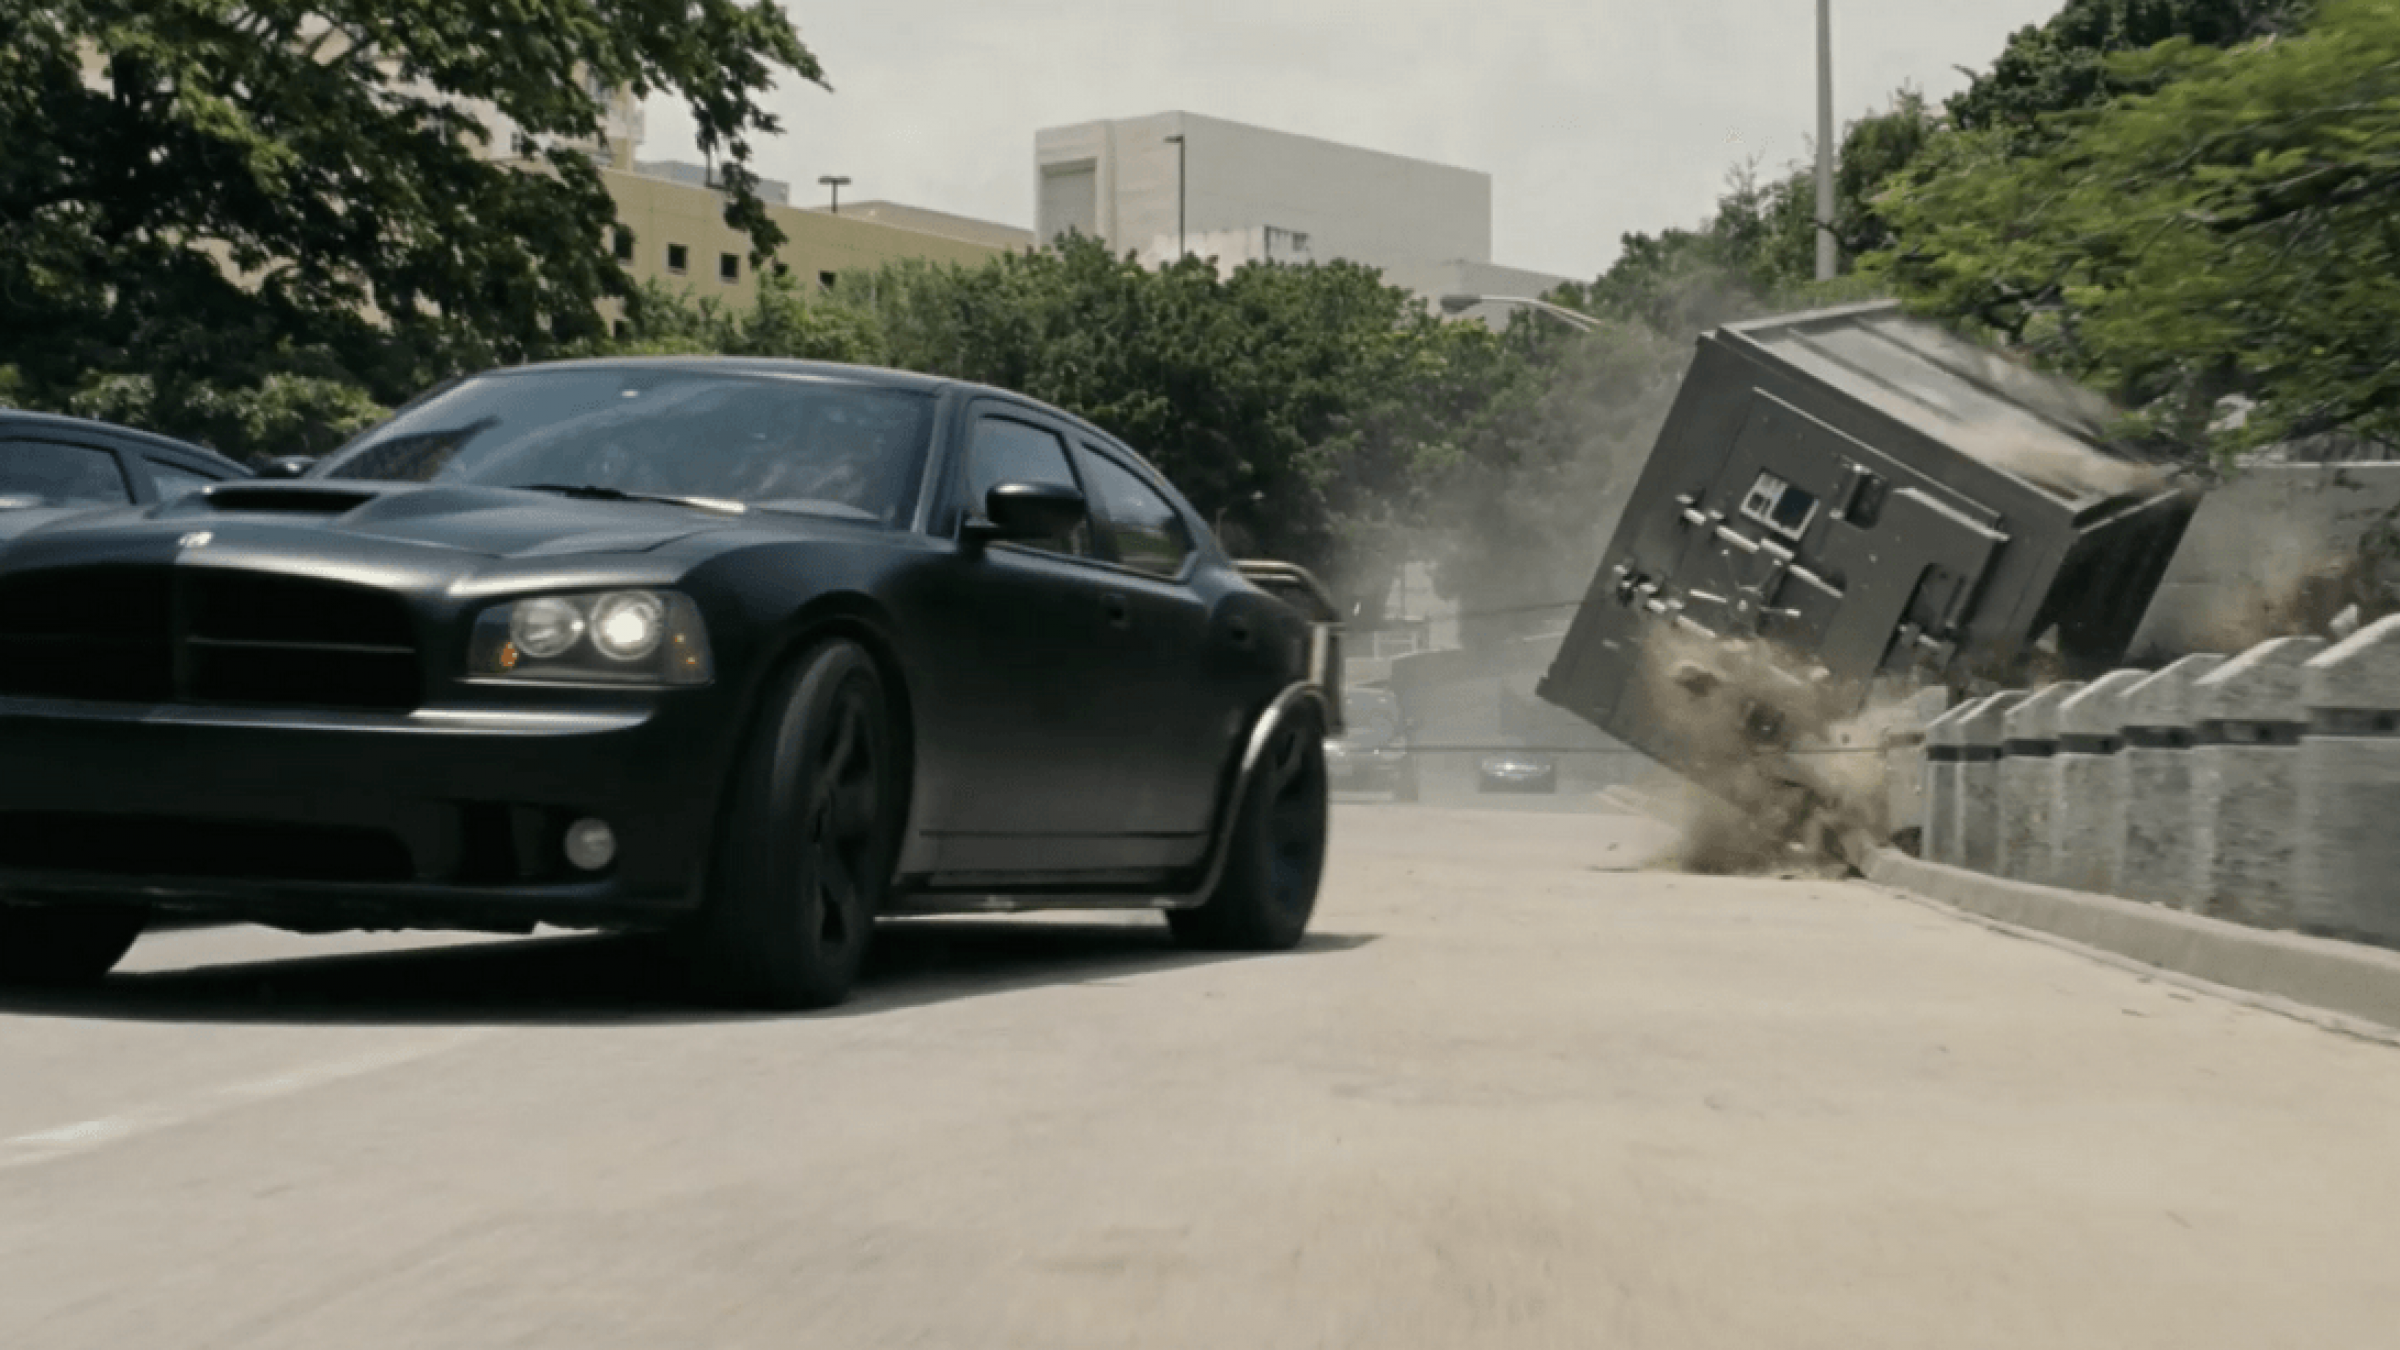 How 'Fast Five' Towed a 9000 Lb. Steel Vault to Create Real Carnage